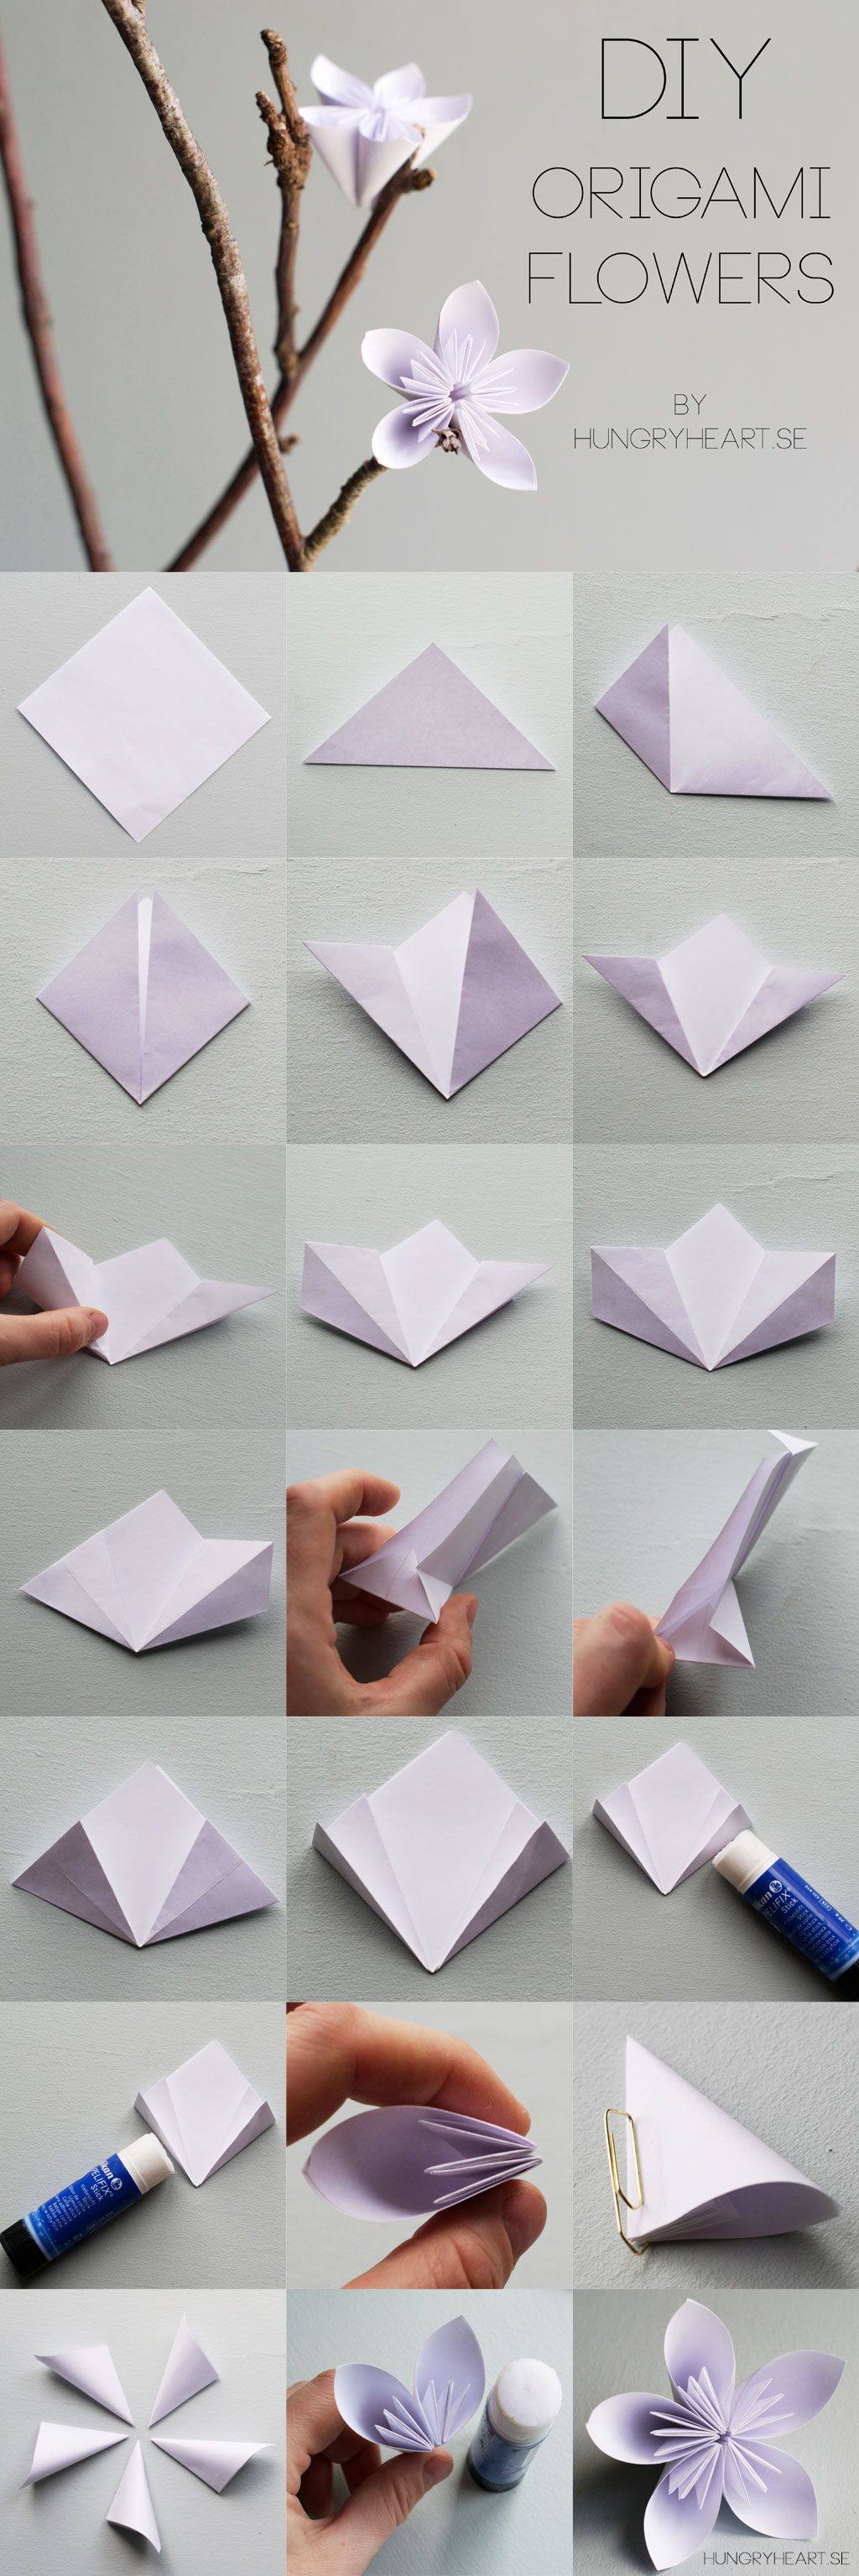 Pin By Anna Knczei On Papr Pinterest Origami Diy Origami And